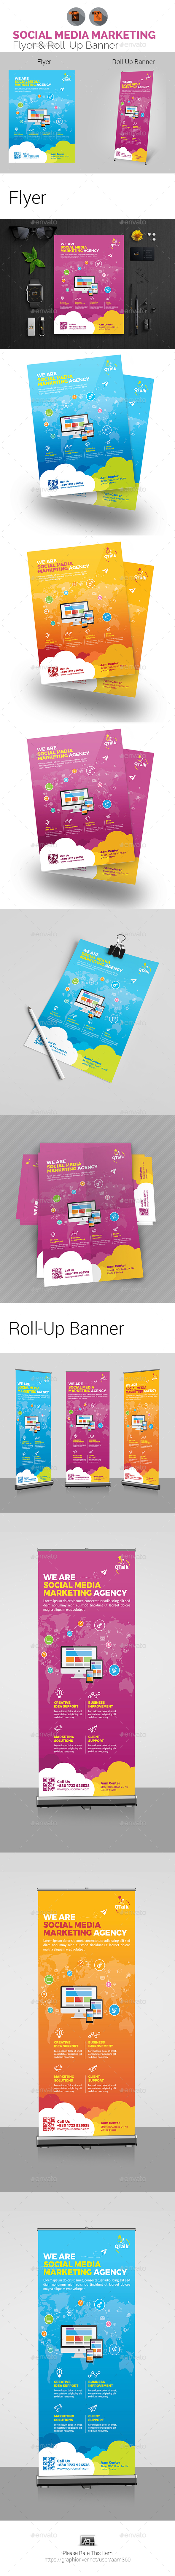 Social Media Marketing Flyer & Roll-Up Banner - Print Templates